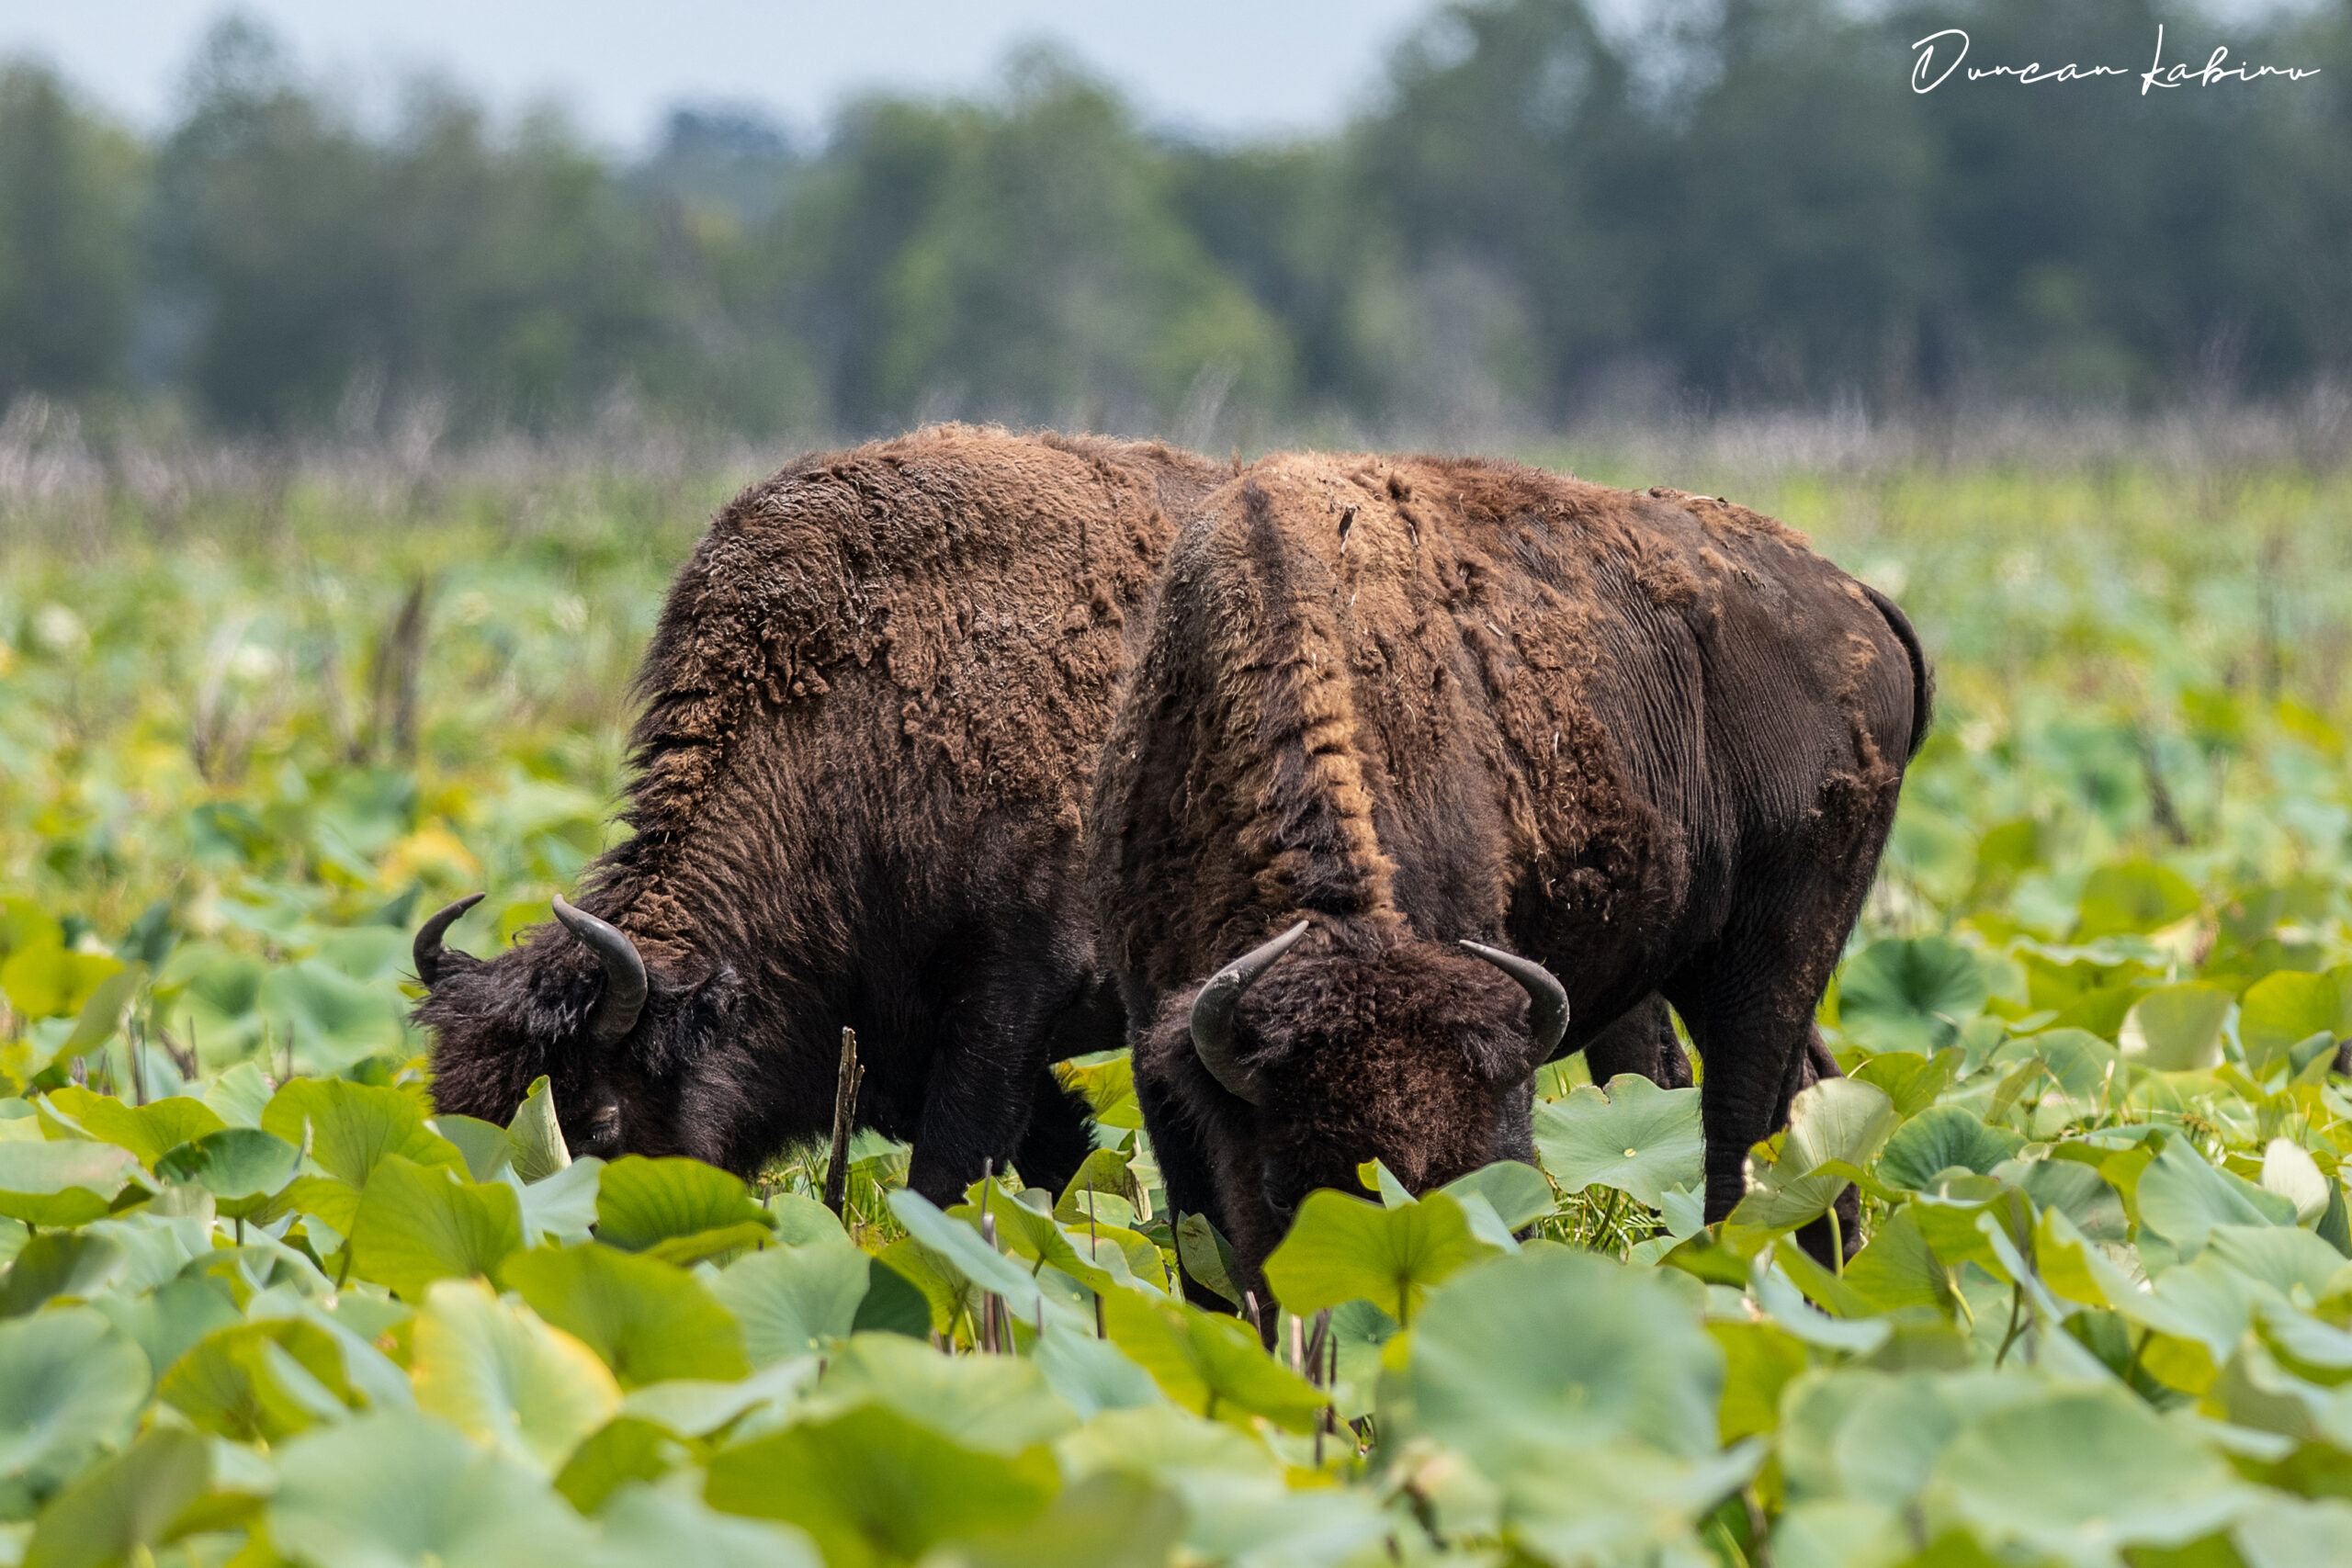 A pair of bison grazing